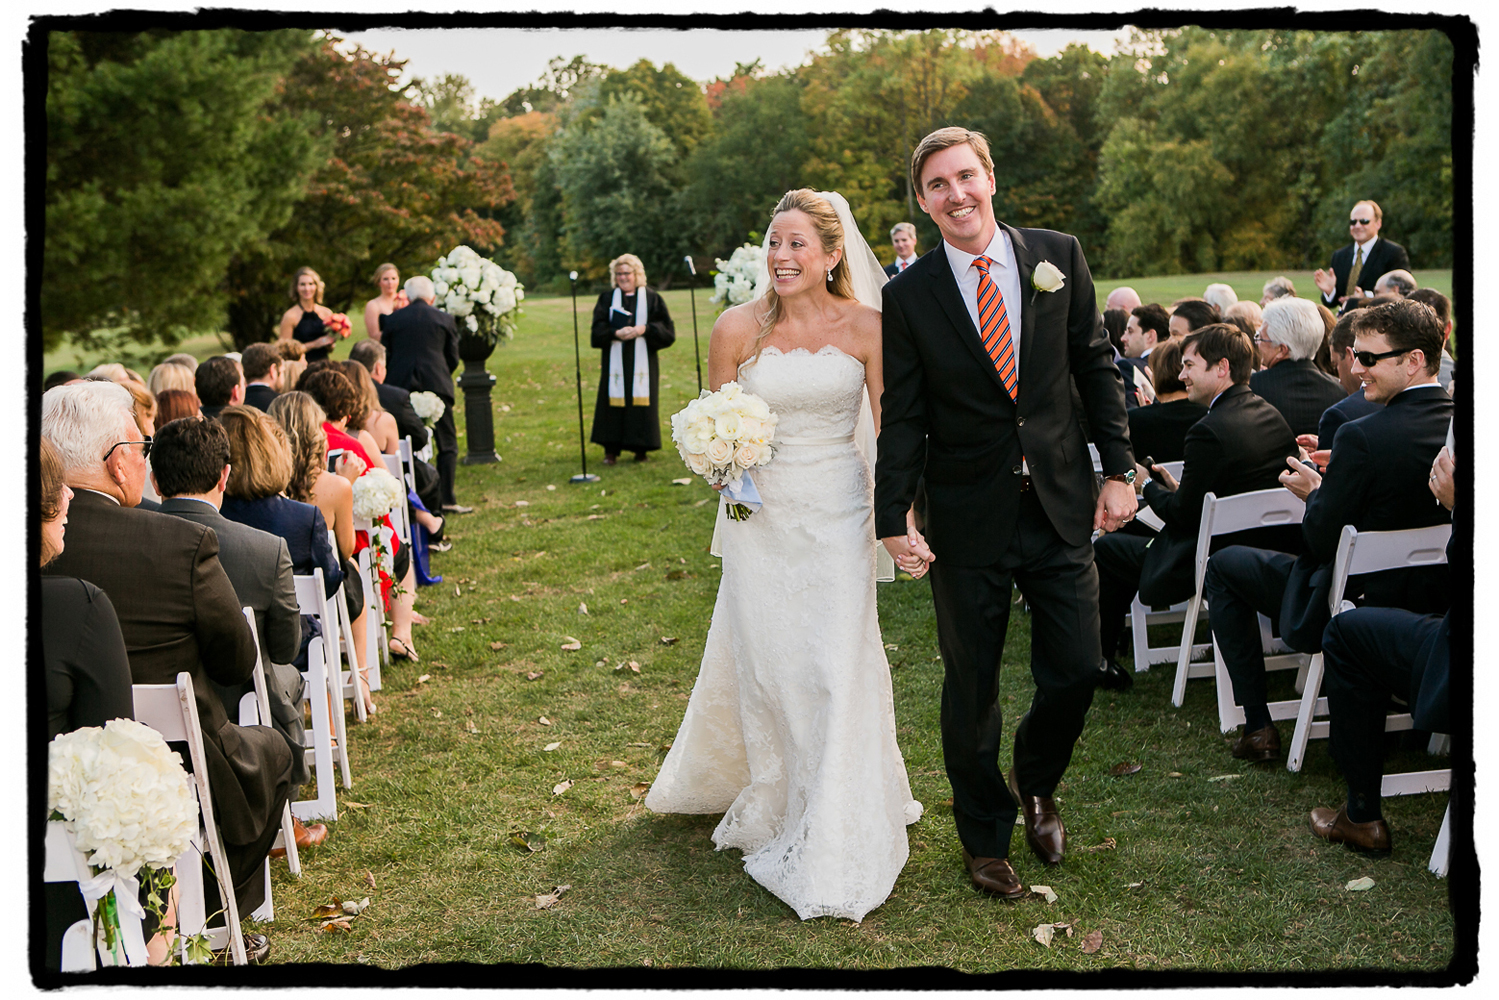 The smiles were contageous at Highlands Country Club as Noelle and Tim walked back down the aisle as husband and wife.